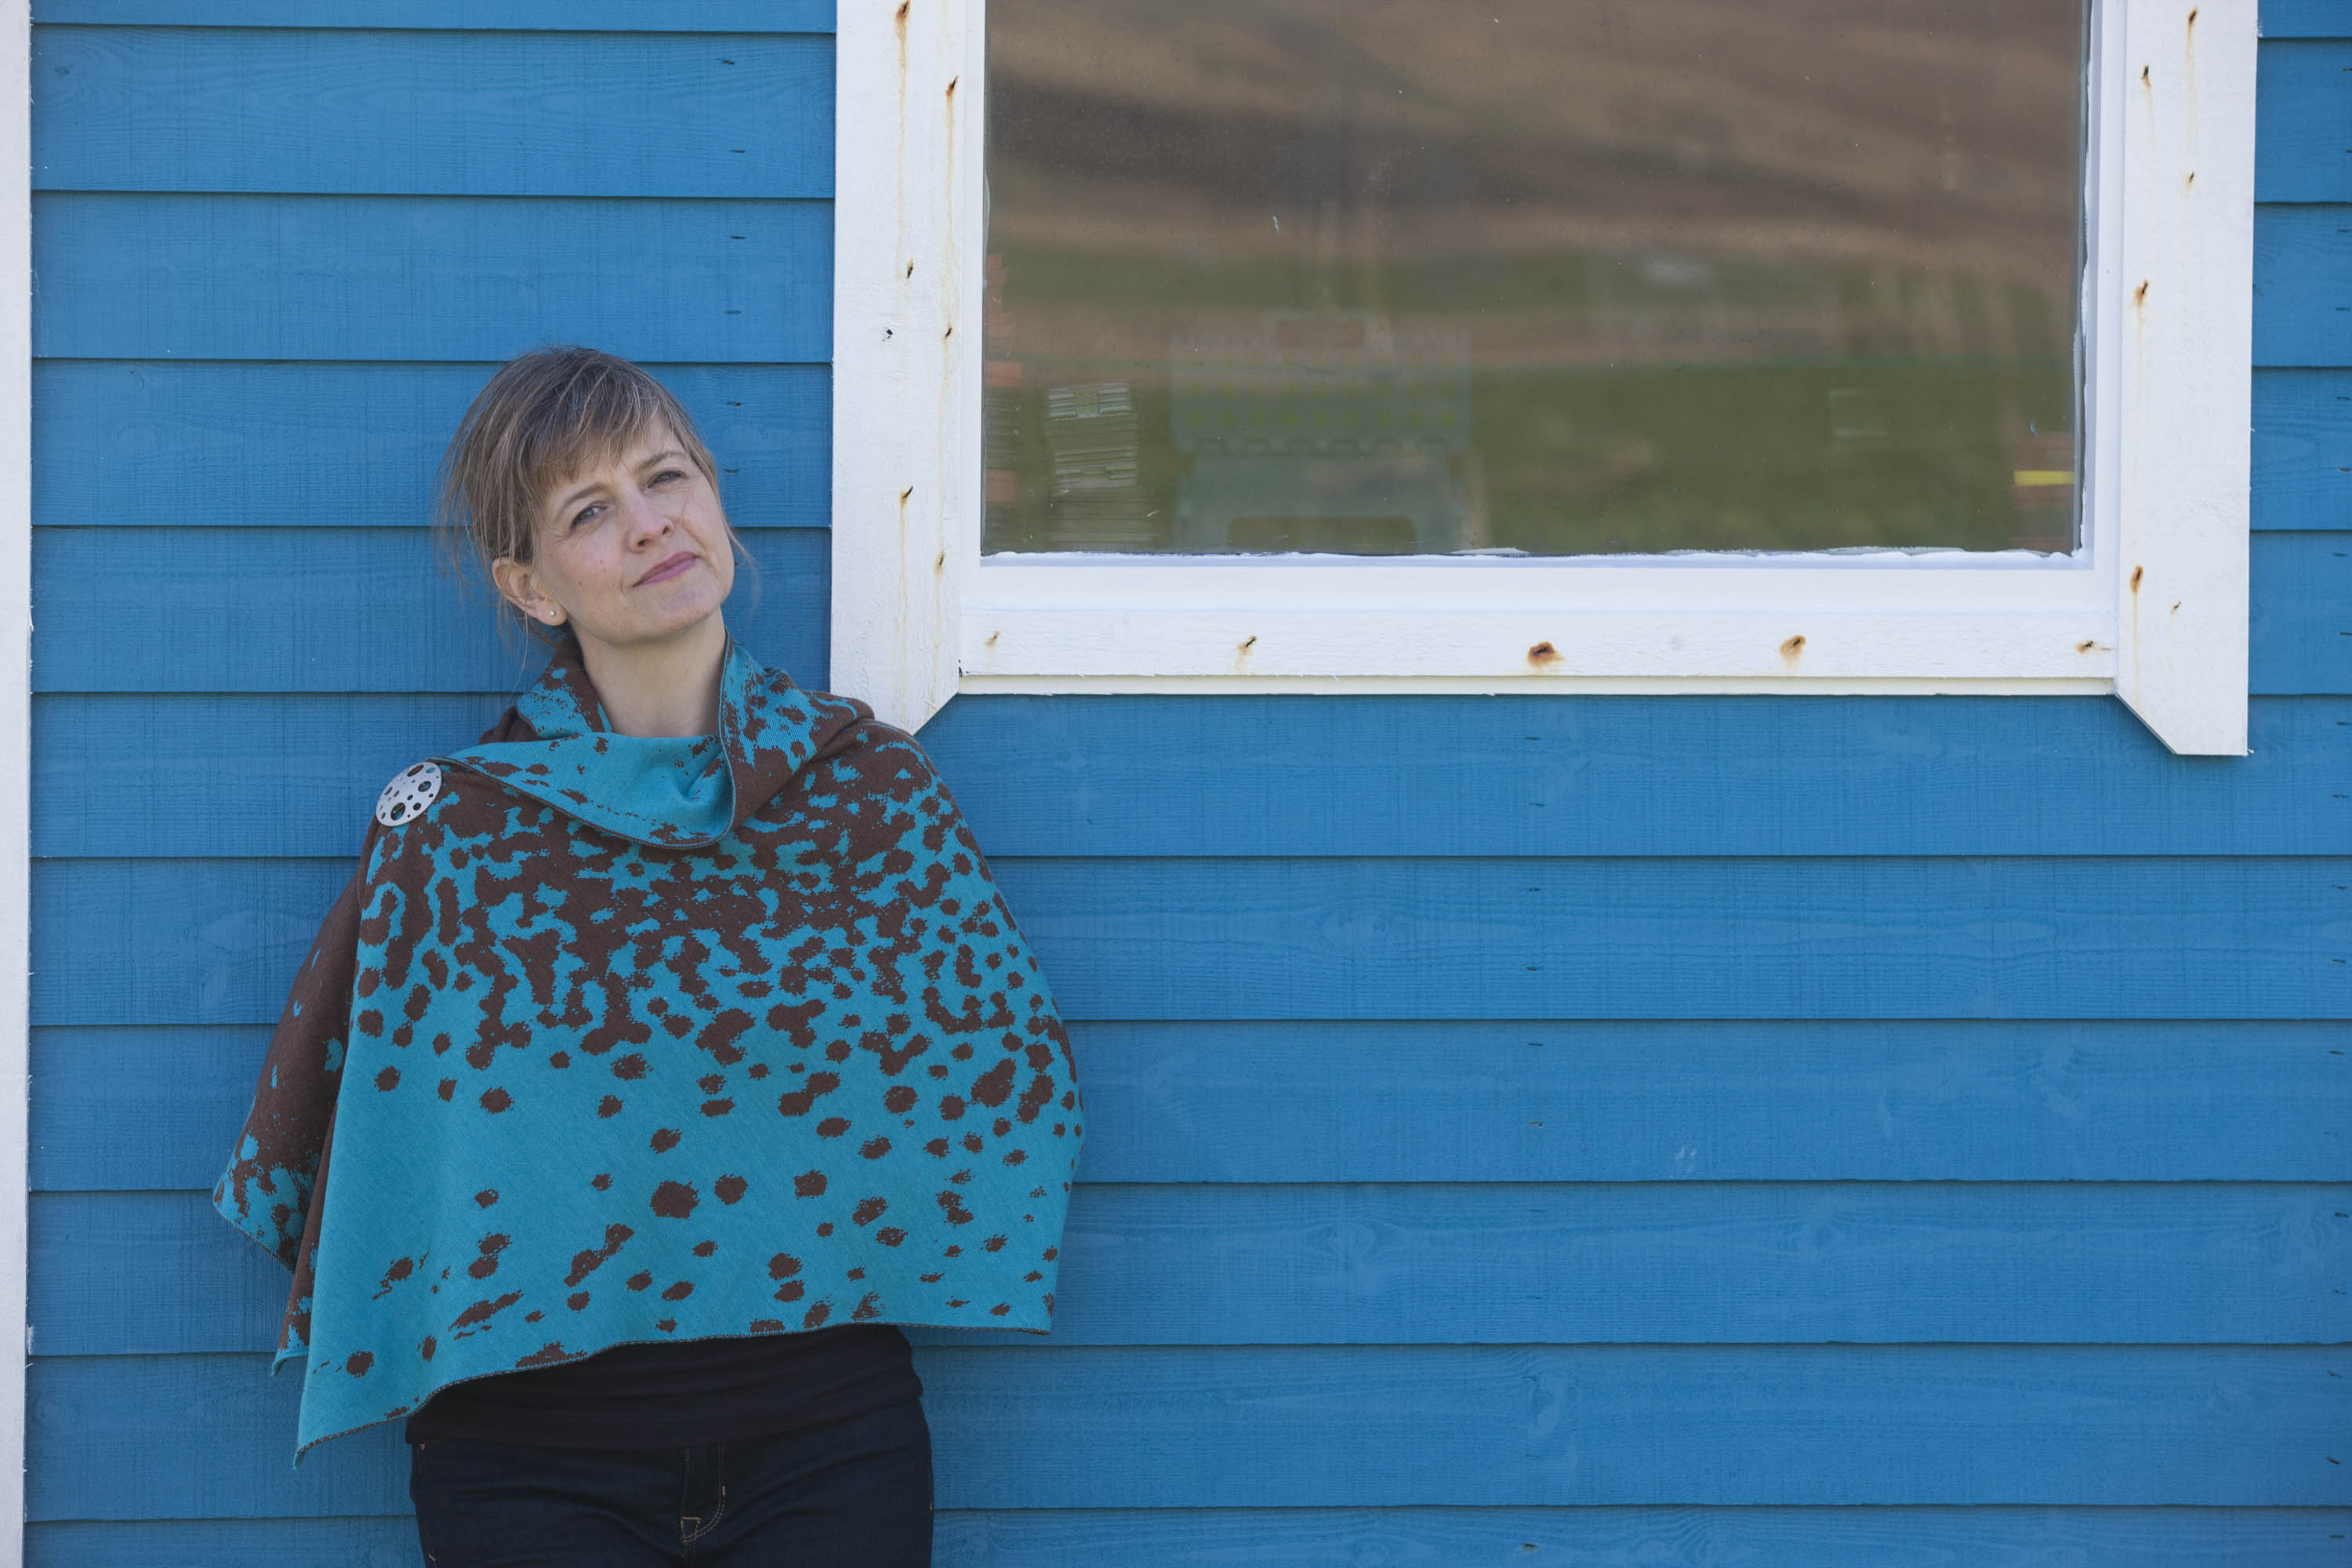 Woman stands against a blue, wooden shed. She wears jeans and a fine knitted contemporary Shetland shawl in an abstract mottled pattern - in a deep turquoise blue and bronze.